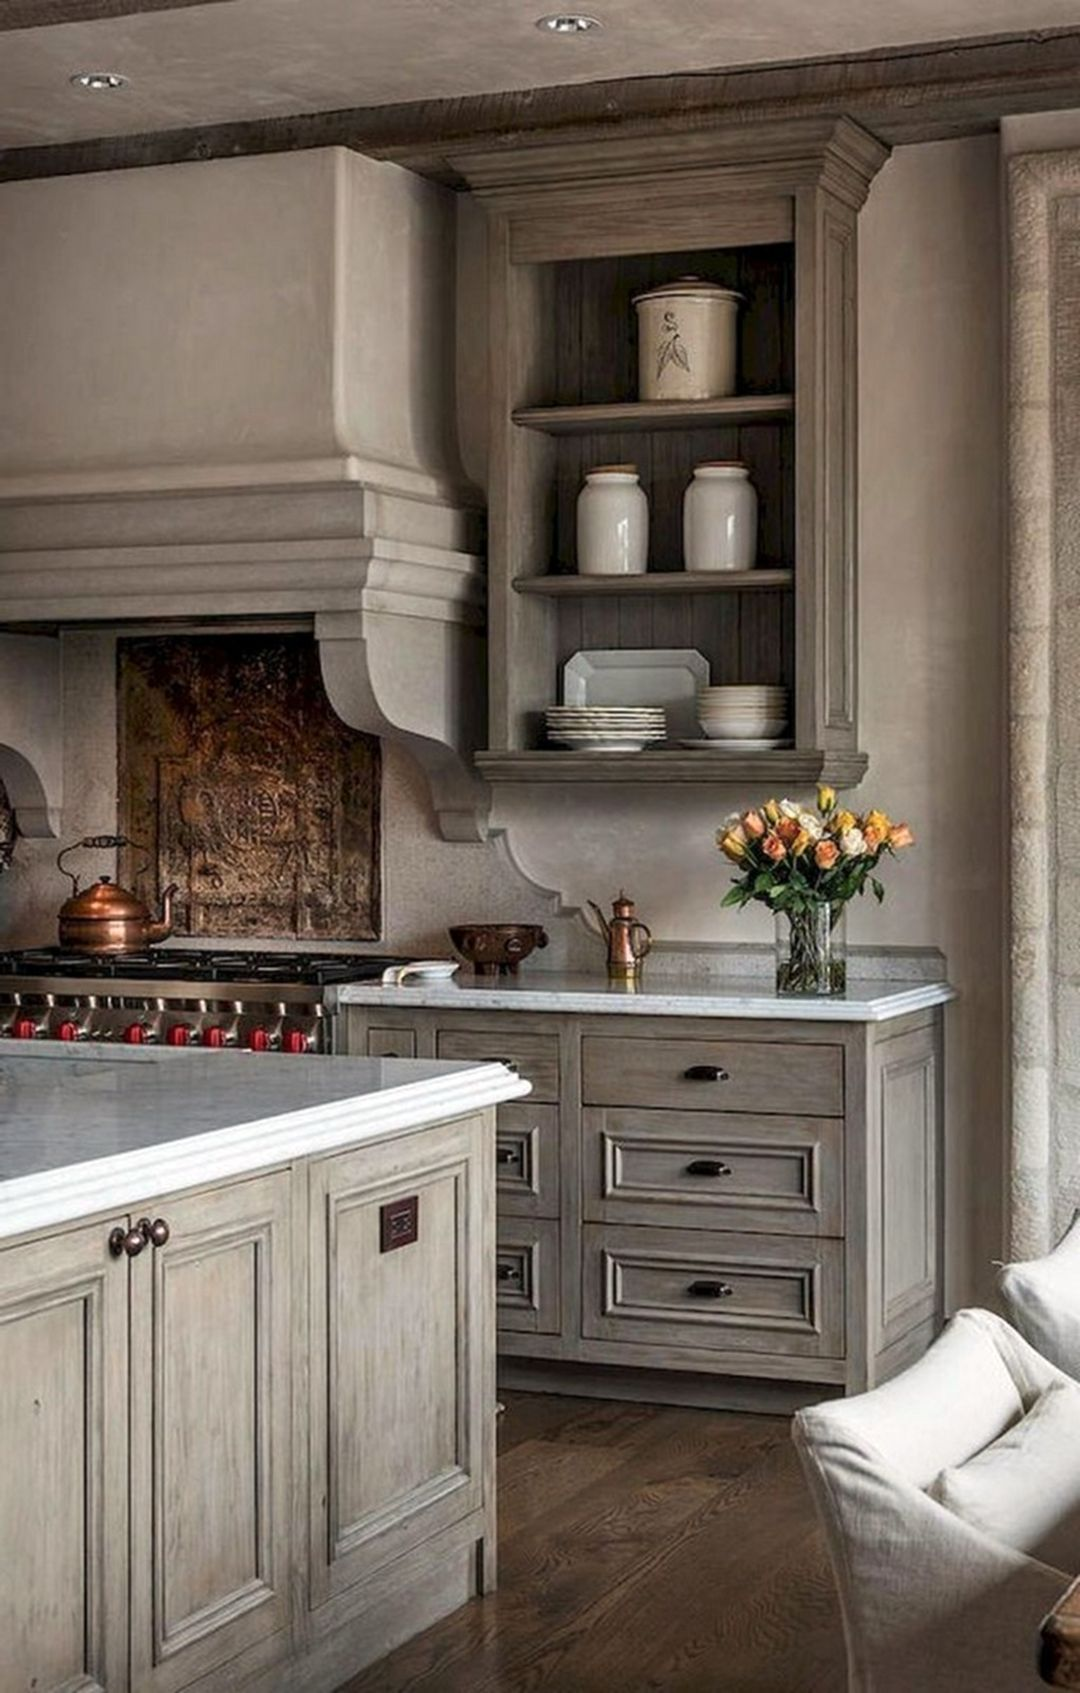 11 elegant modern rustic farmhouse kitchen cabinets ideas in 2020 modern farmhouse kitchens on kitchen cabinets farmhouse style id=29354